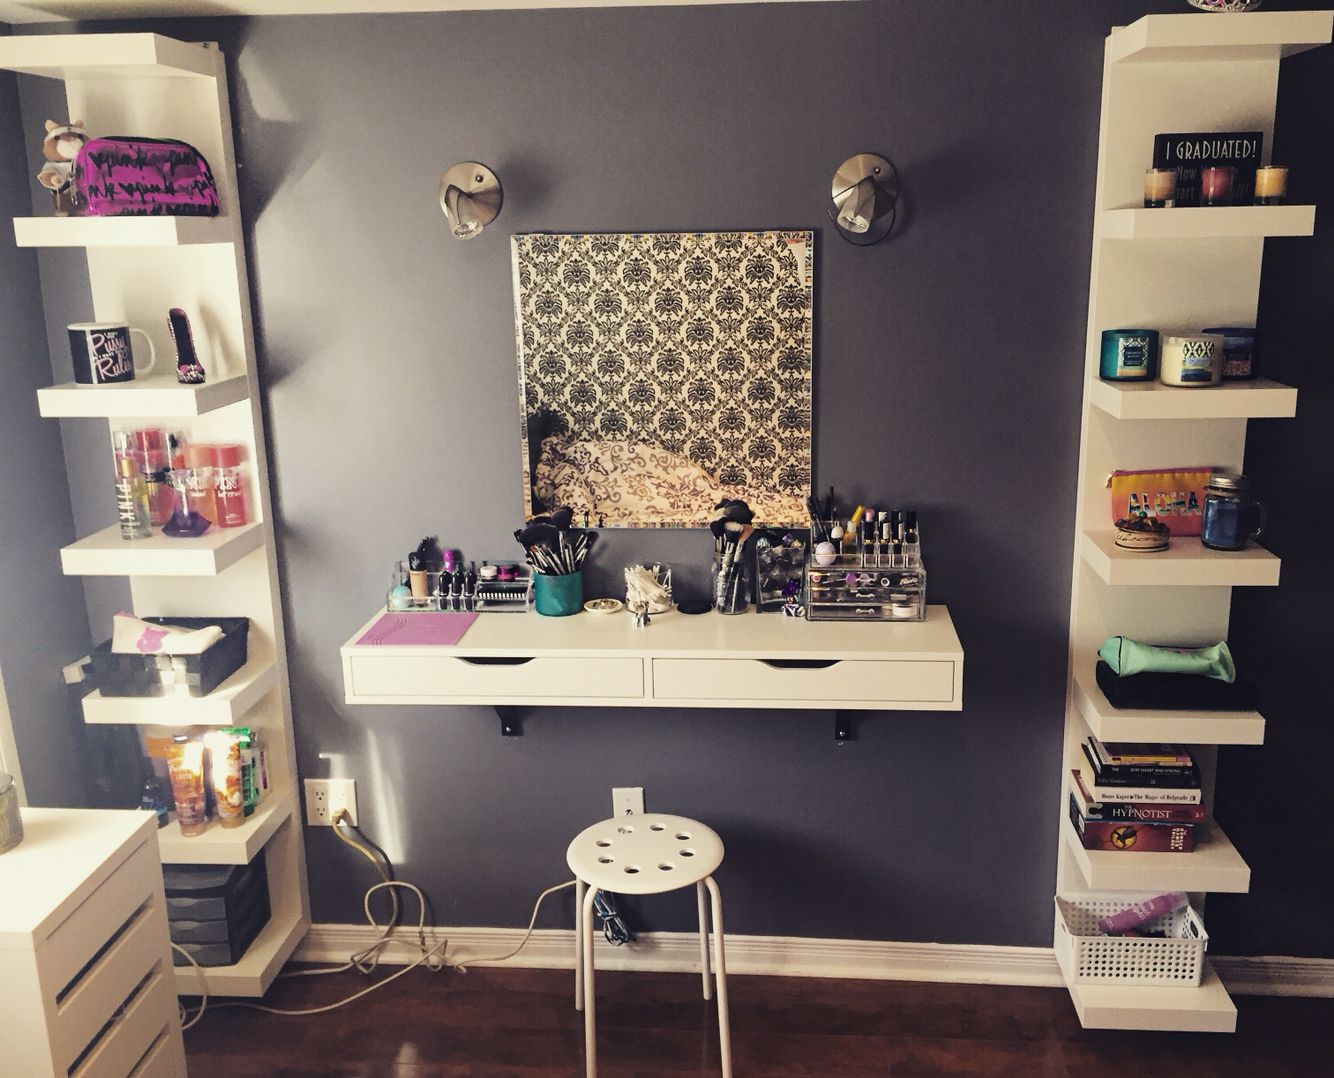 Ikea Space Saving #vanity #makeup #ekby #lack #ikea #shelf